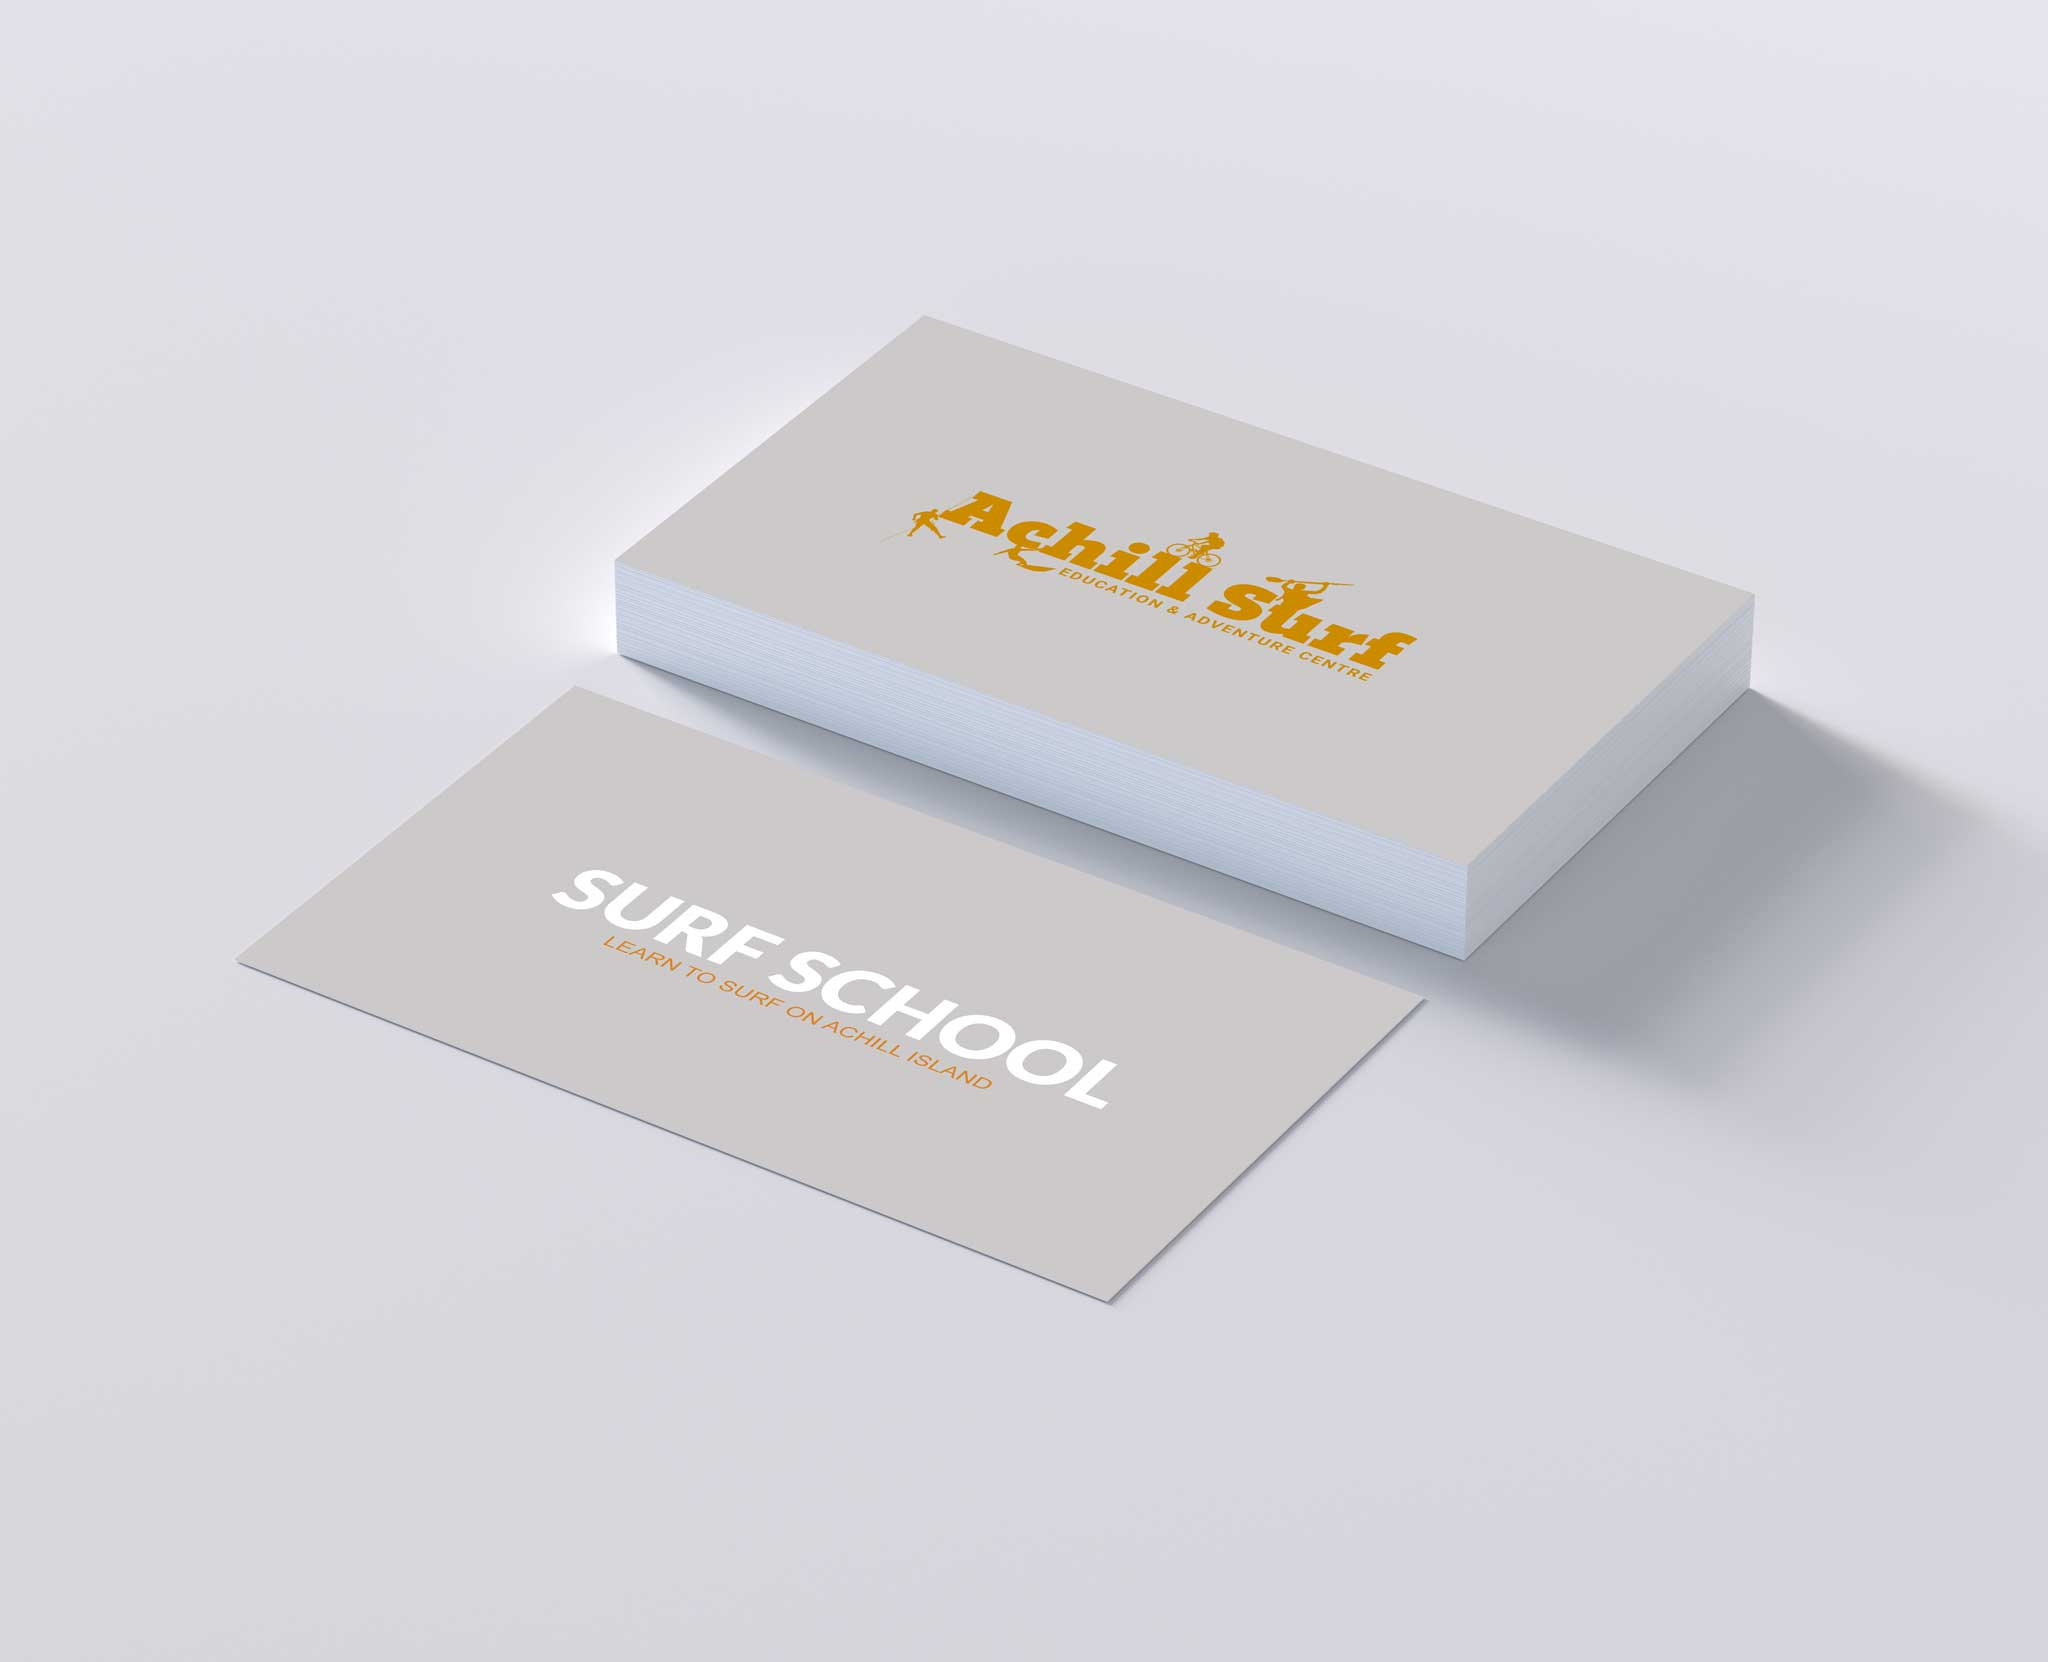 surf-school-card-design